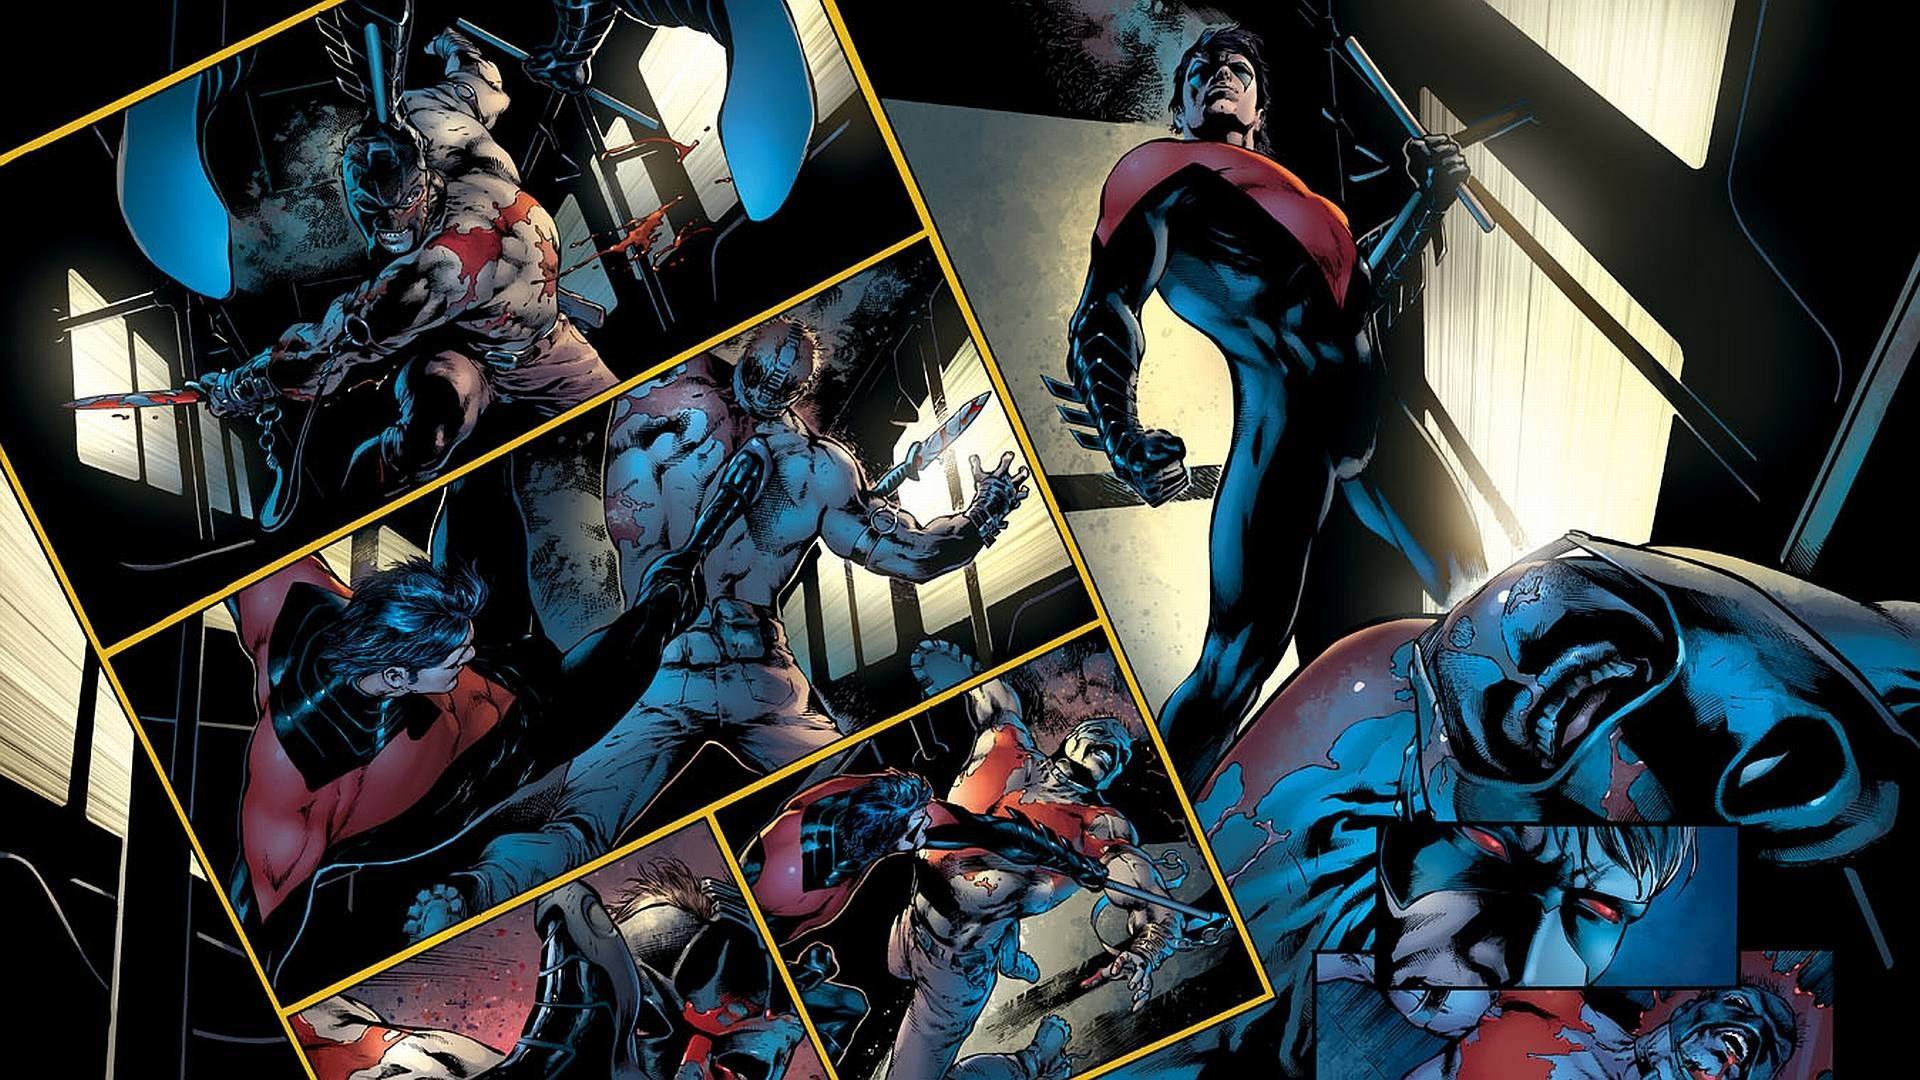 Wallpapers For > Nightwing And Batman Wallpaper